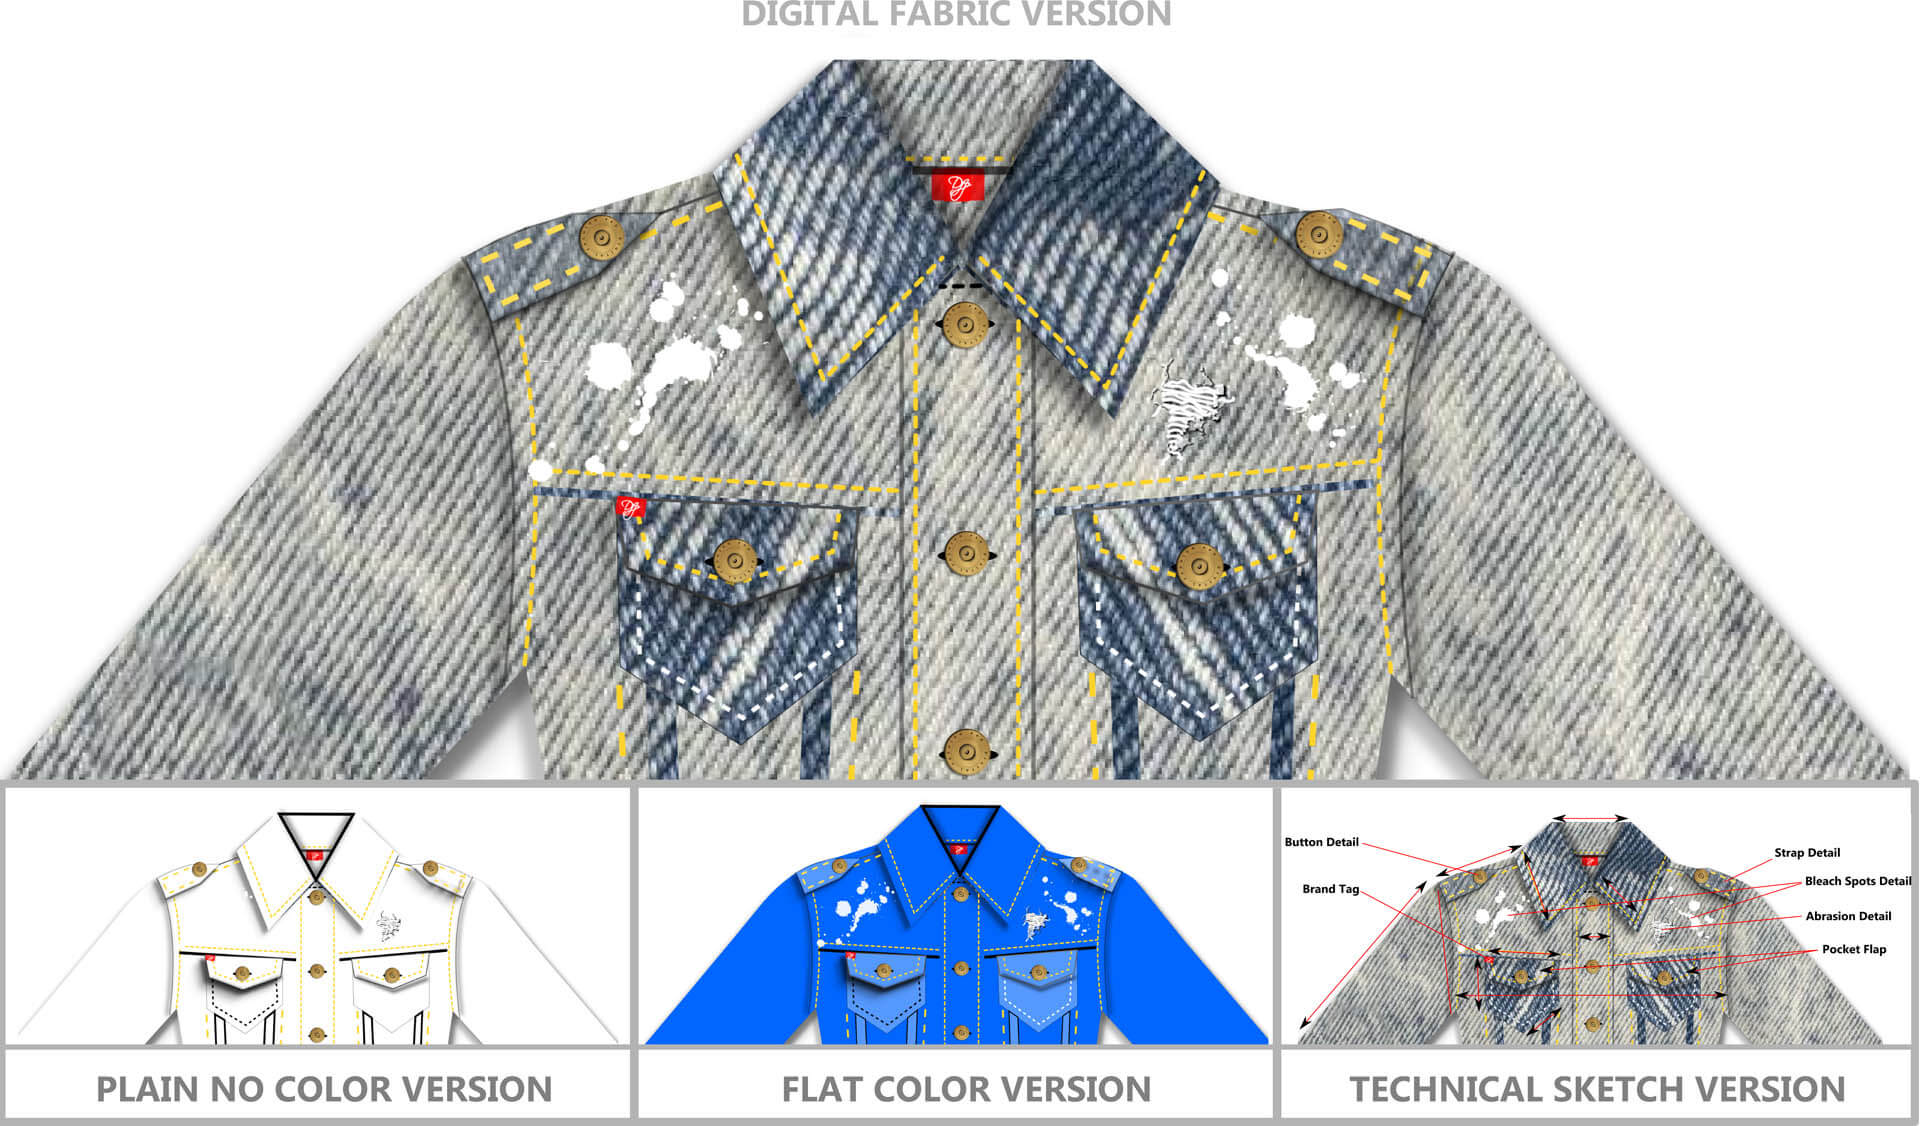 Denim Jacket Design - Fashion Design Software - Digital Fashion Pro - Design Your Own Clothing